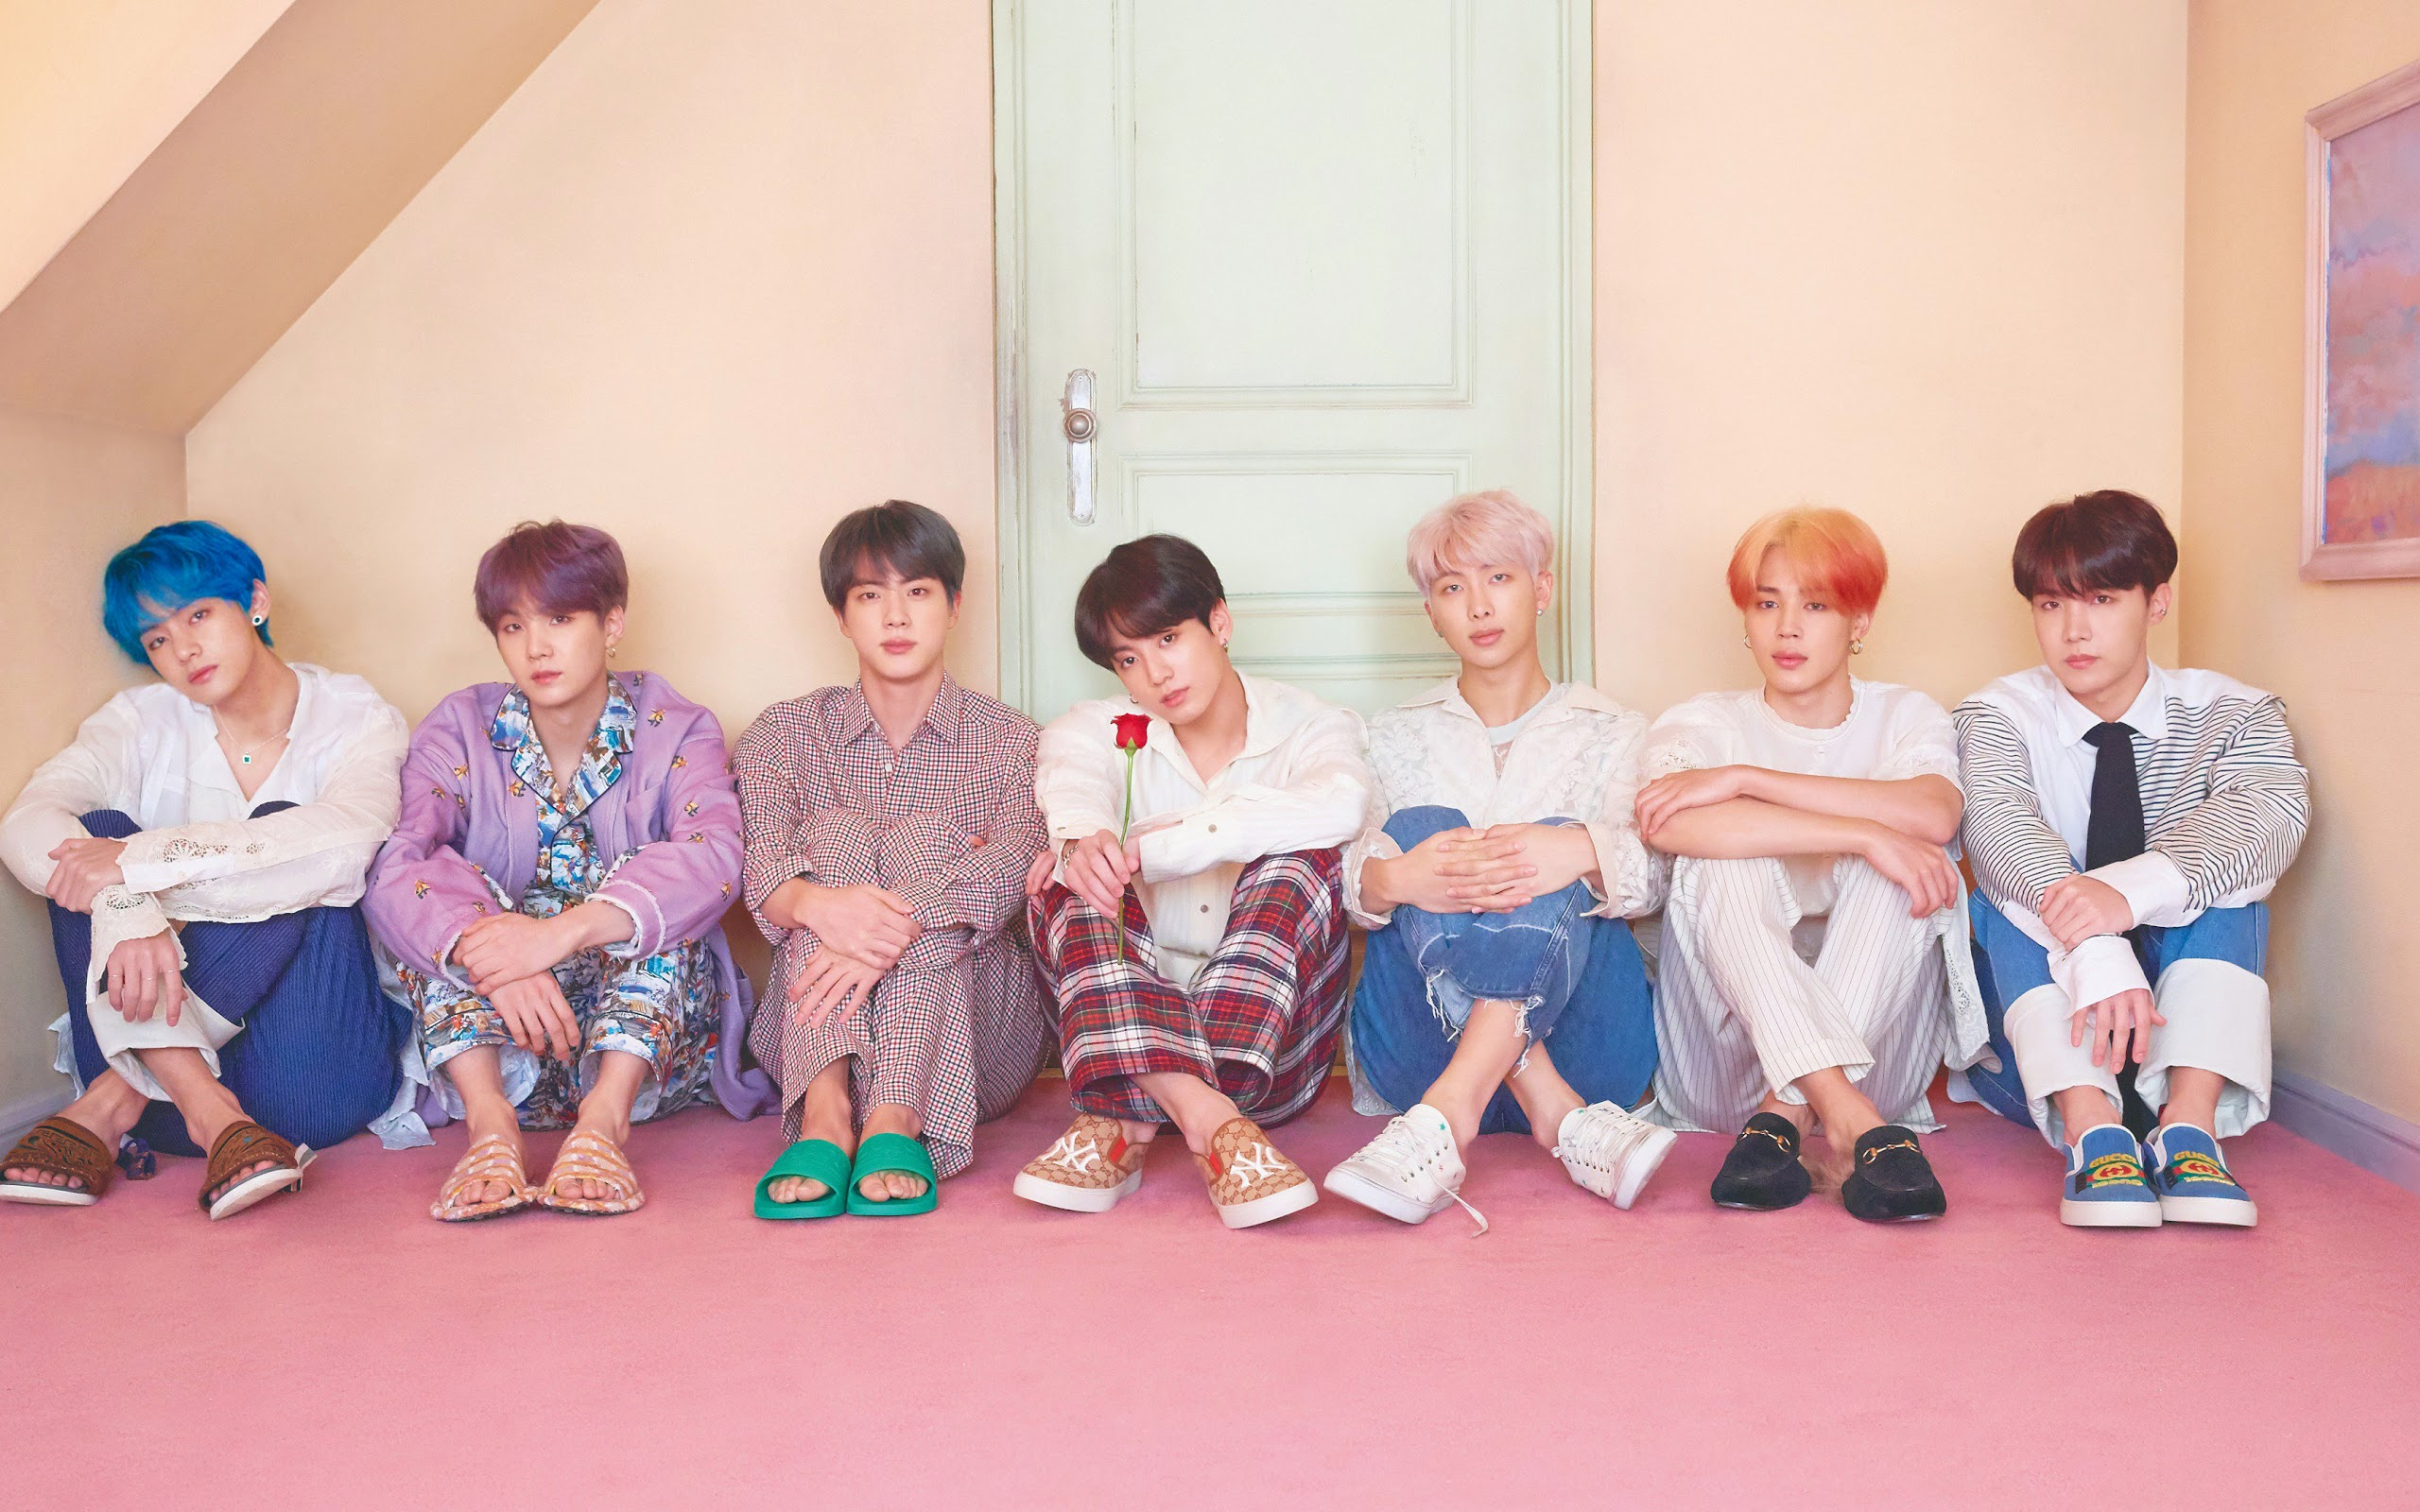 bts map of the soul persona members uhdpaper.com 4K 25